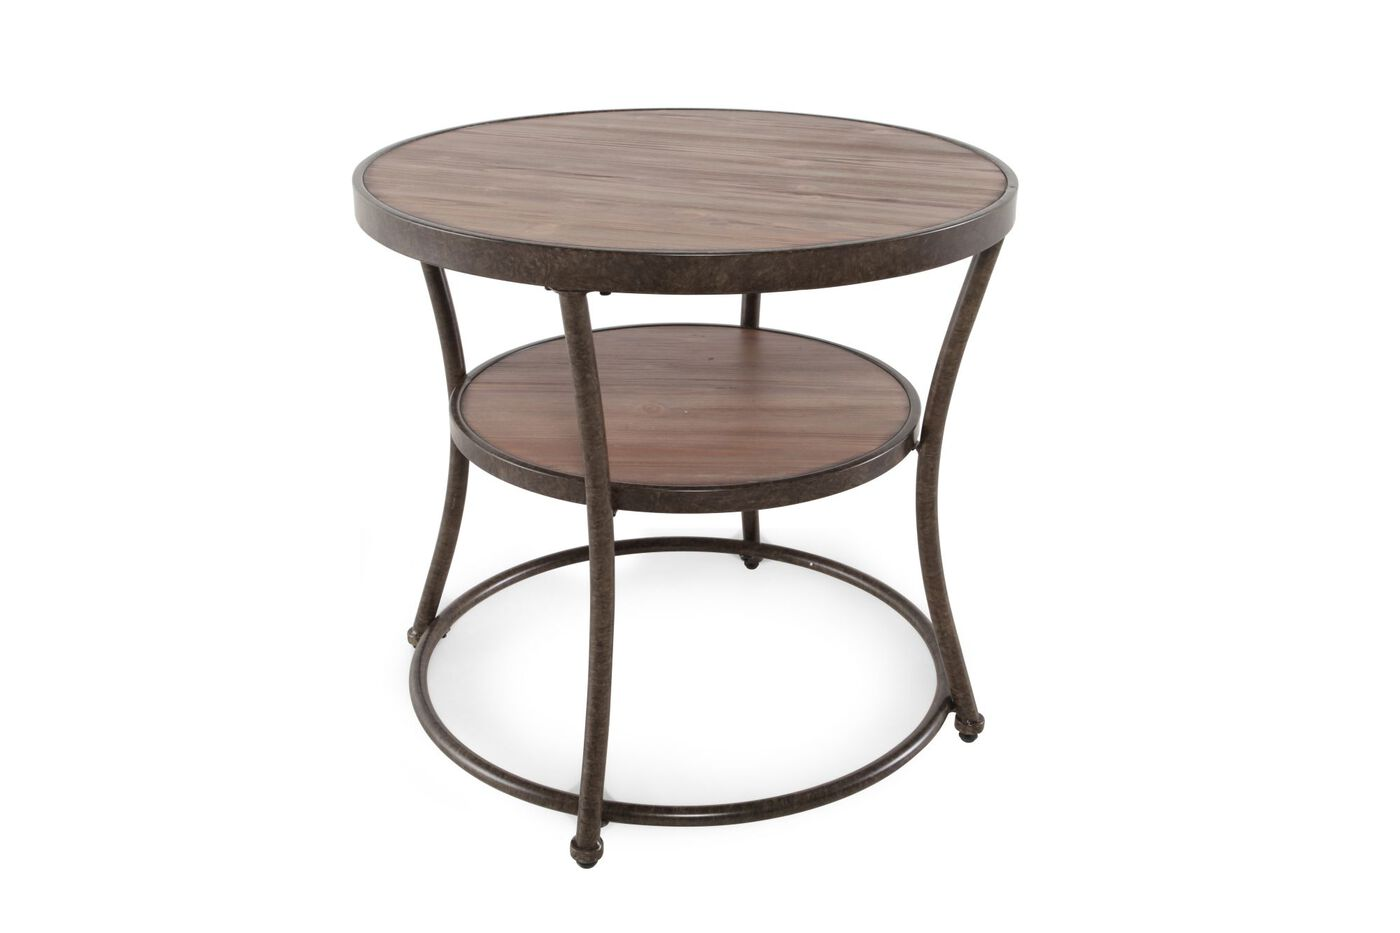 Distressed Round Casual End Table In Rustic Pine